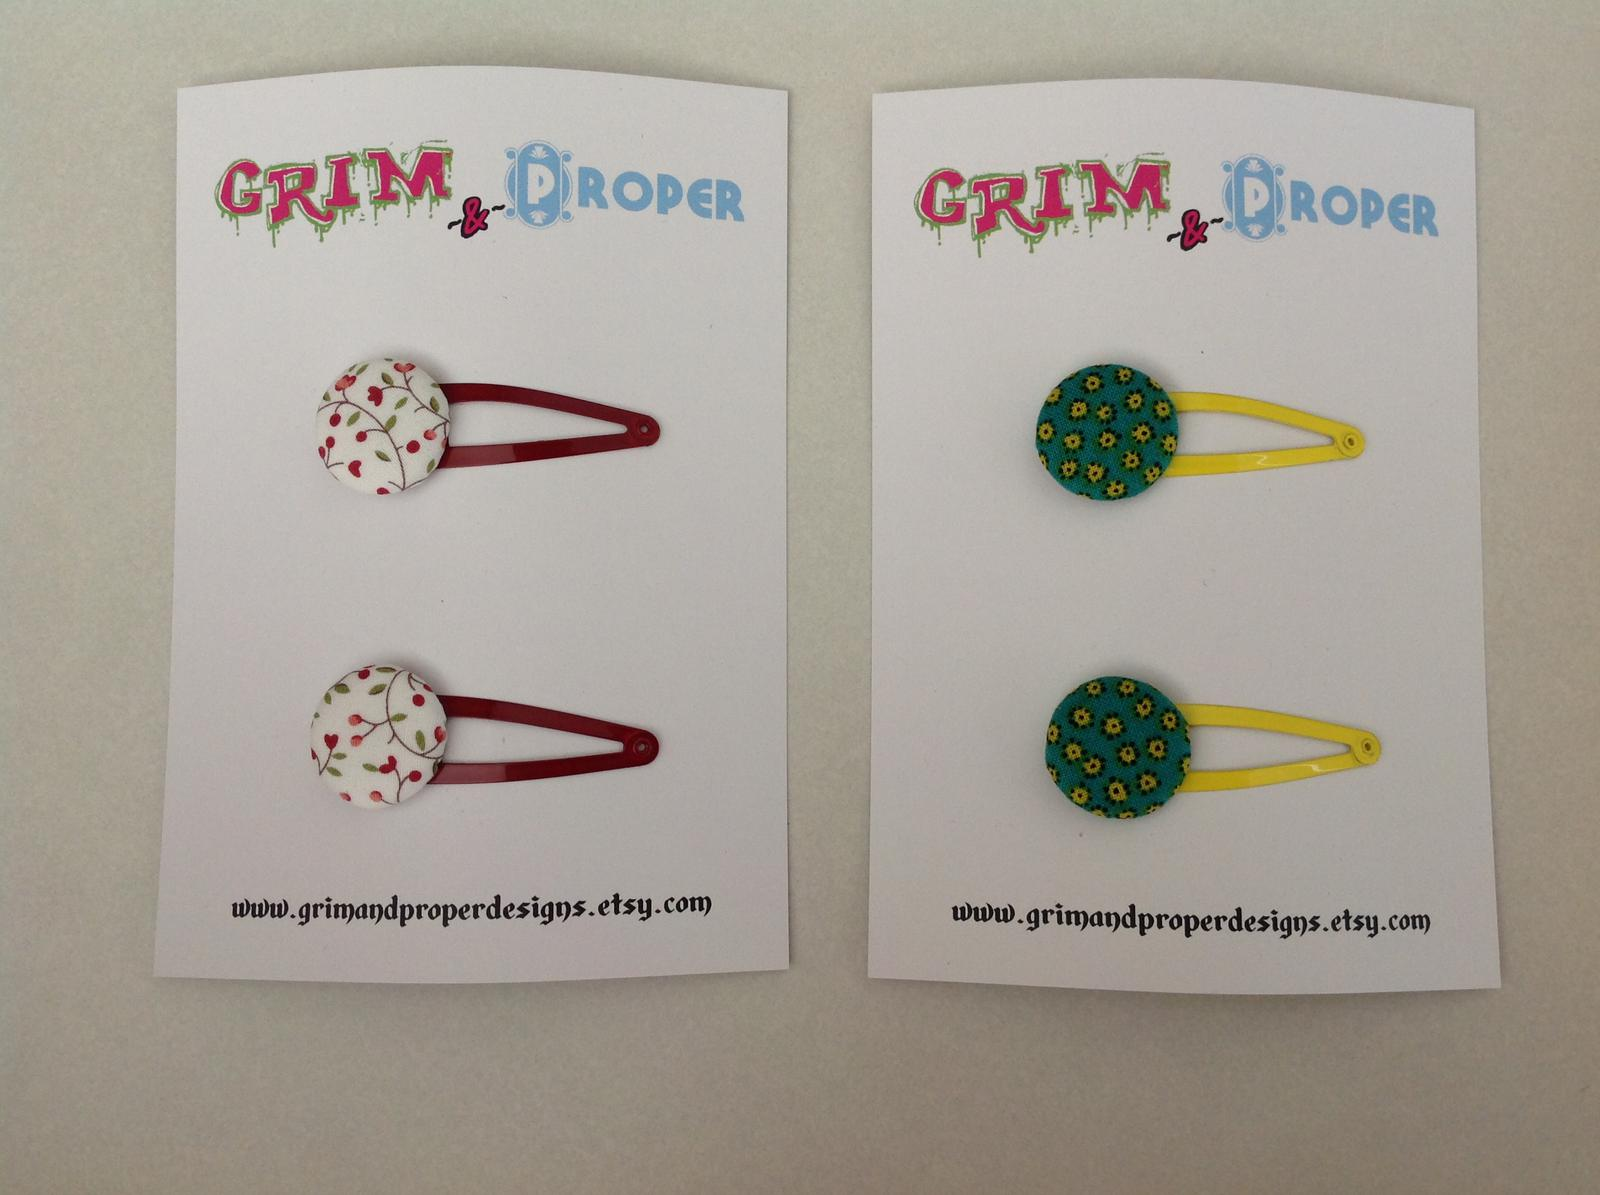 White & red floral & green & yellow floral print snap clips